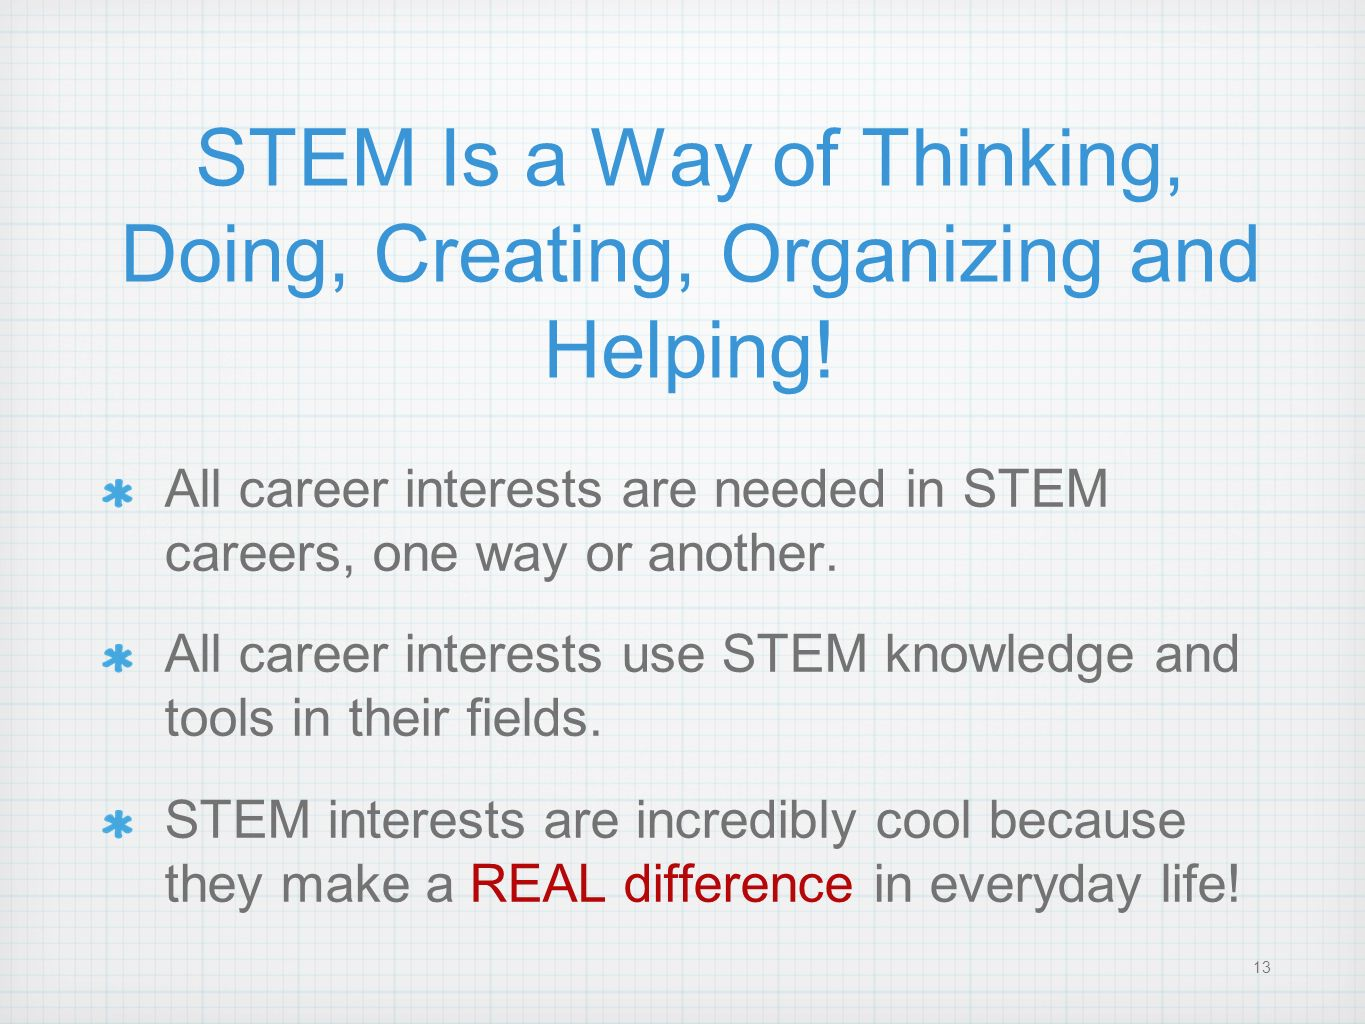 STEM Is a Way of Thinking, Doing, Creating, Organizing and Helping!